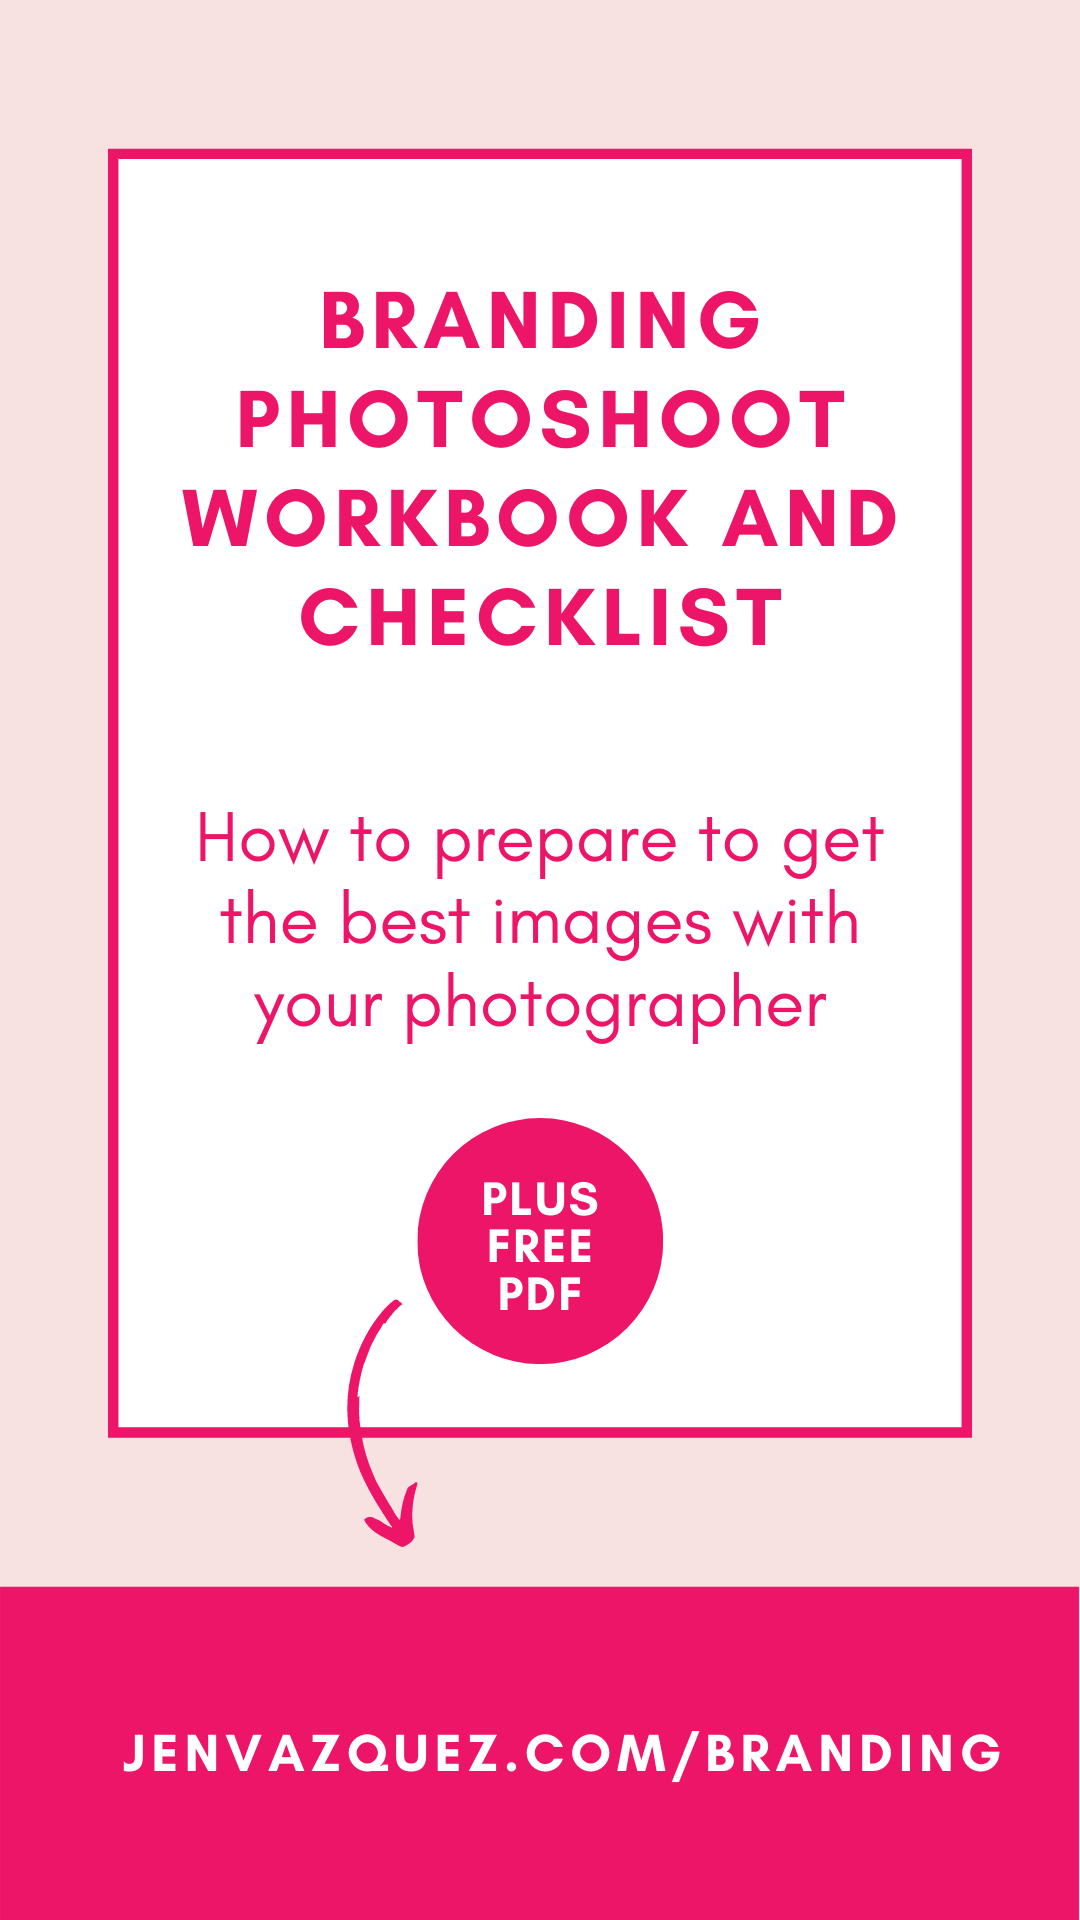 Branding Photoshoot Workbook and Checklist 1